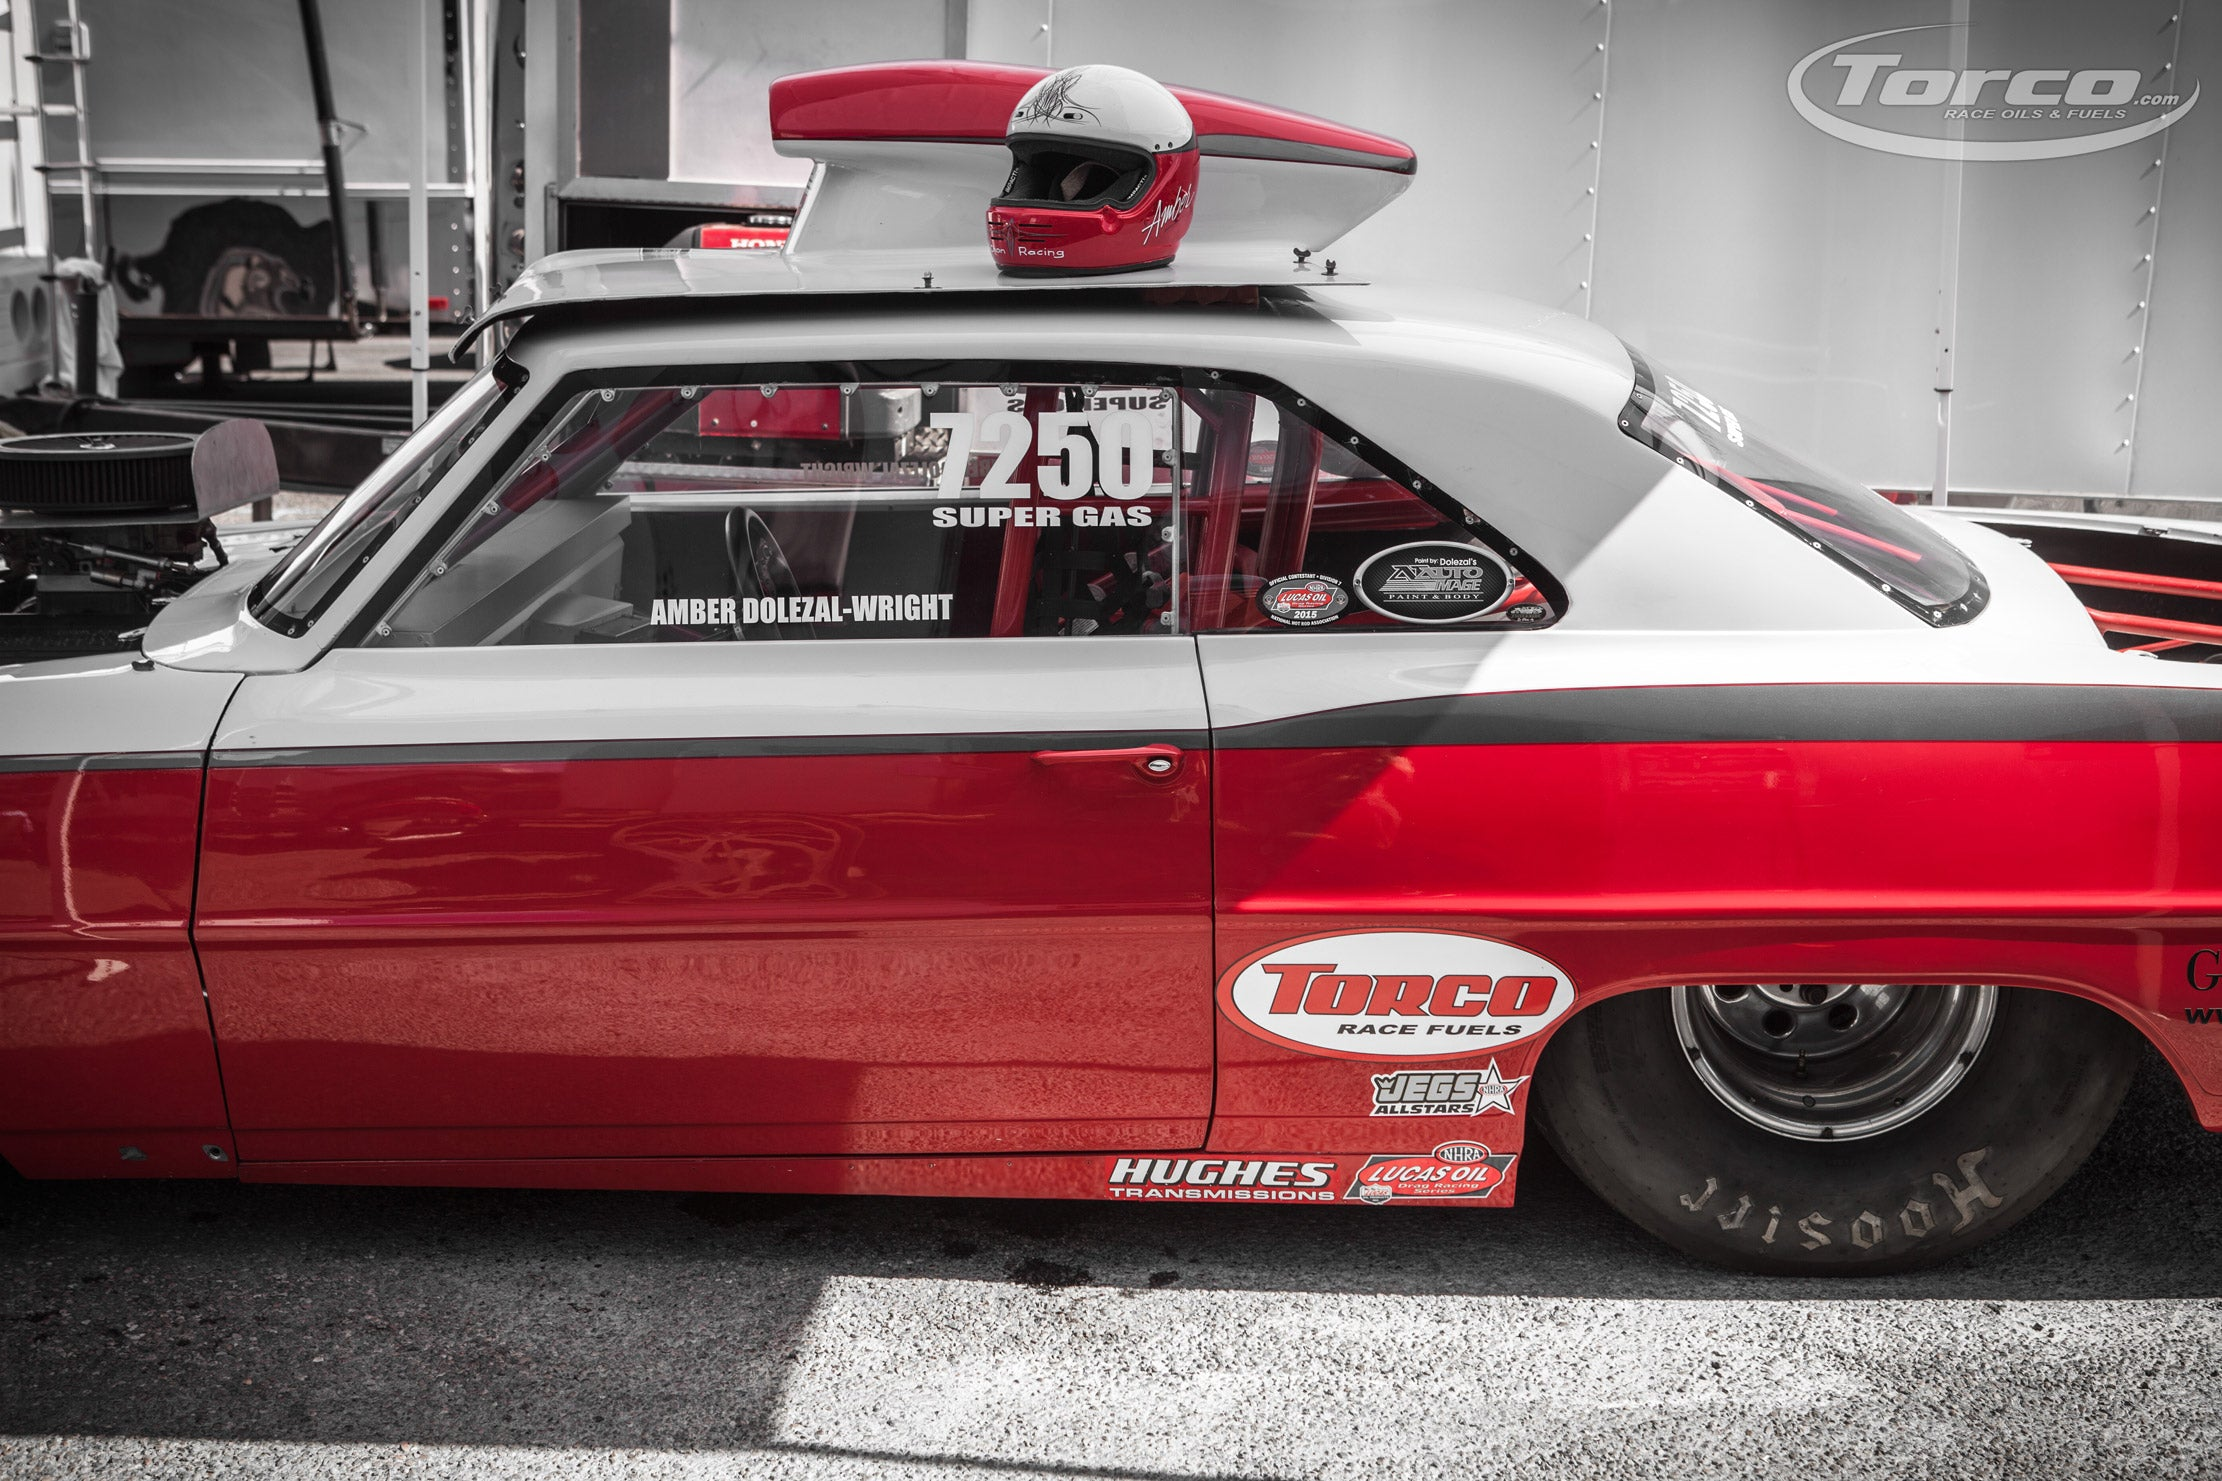 torco dragster